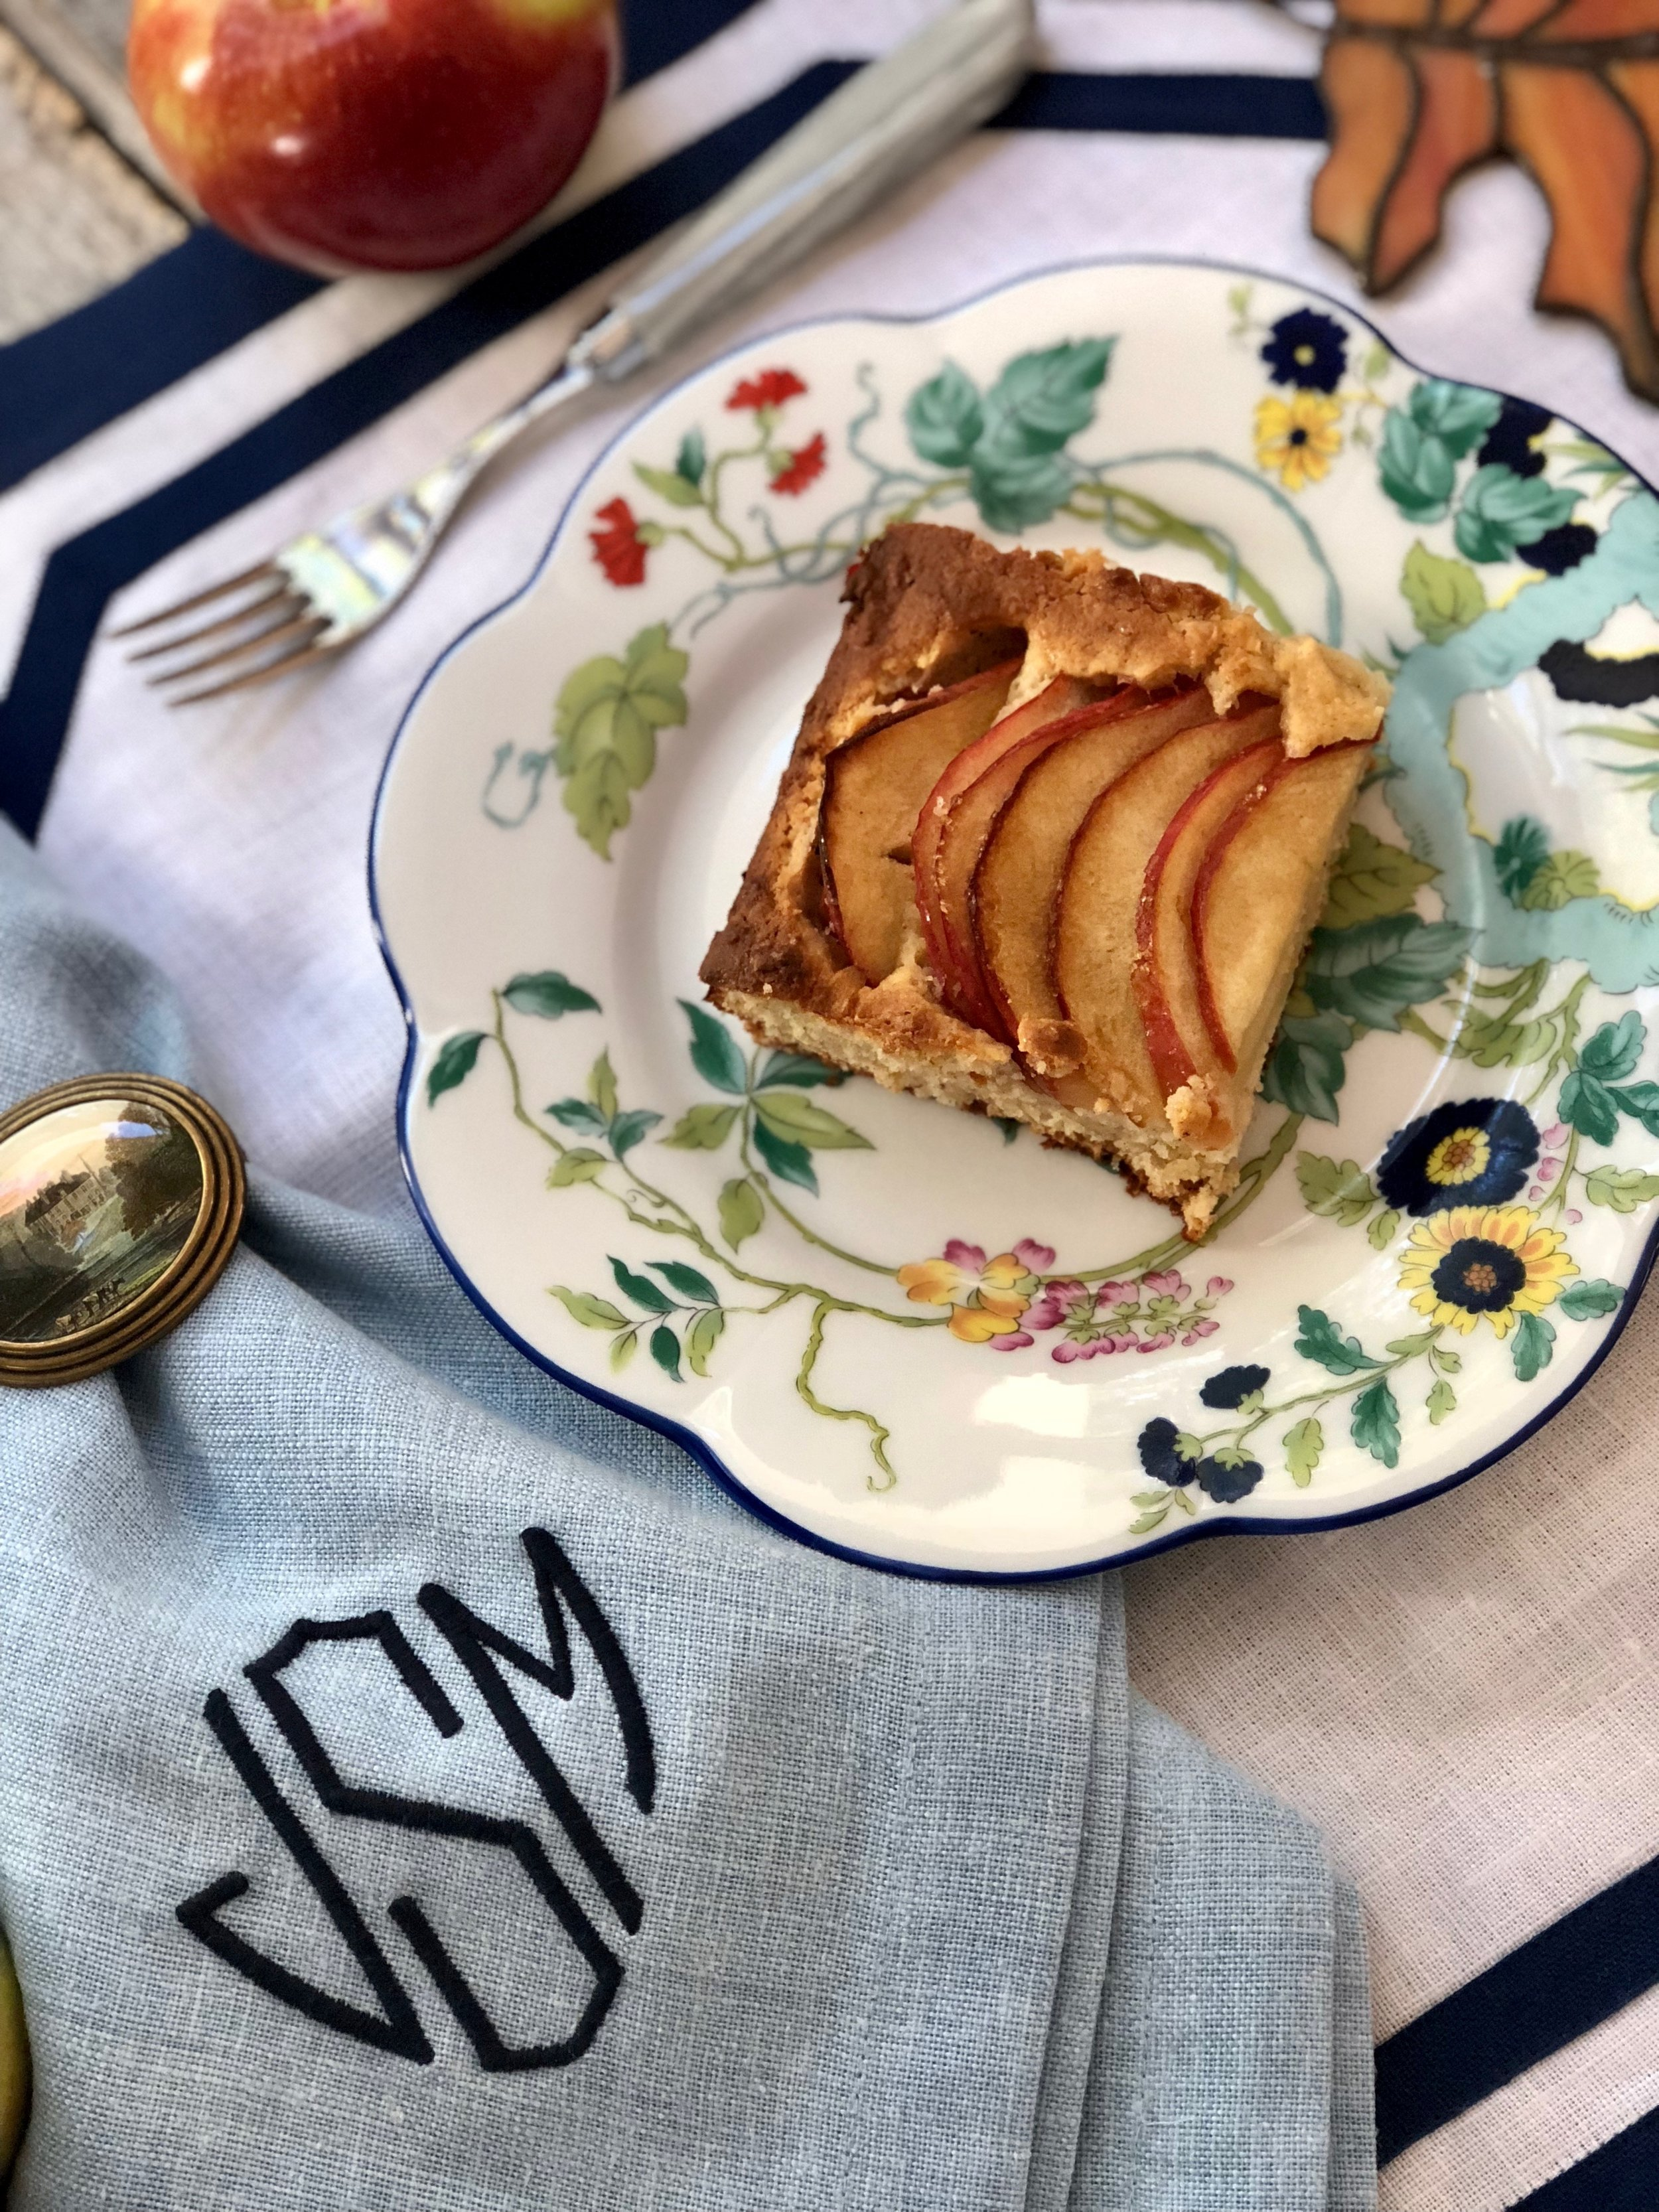 (L to R) Capdeco Flatware with faux marble handle (Dishwasher Safe), Matouk Chamant Napkins (available with custom monogram), Matouk Casual Couture Placemat, Royal Limoges Nymphea Paradise Bleu cake plate. Topped with a slice of Stacey's heavenly Apple Tray Bake.